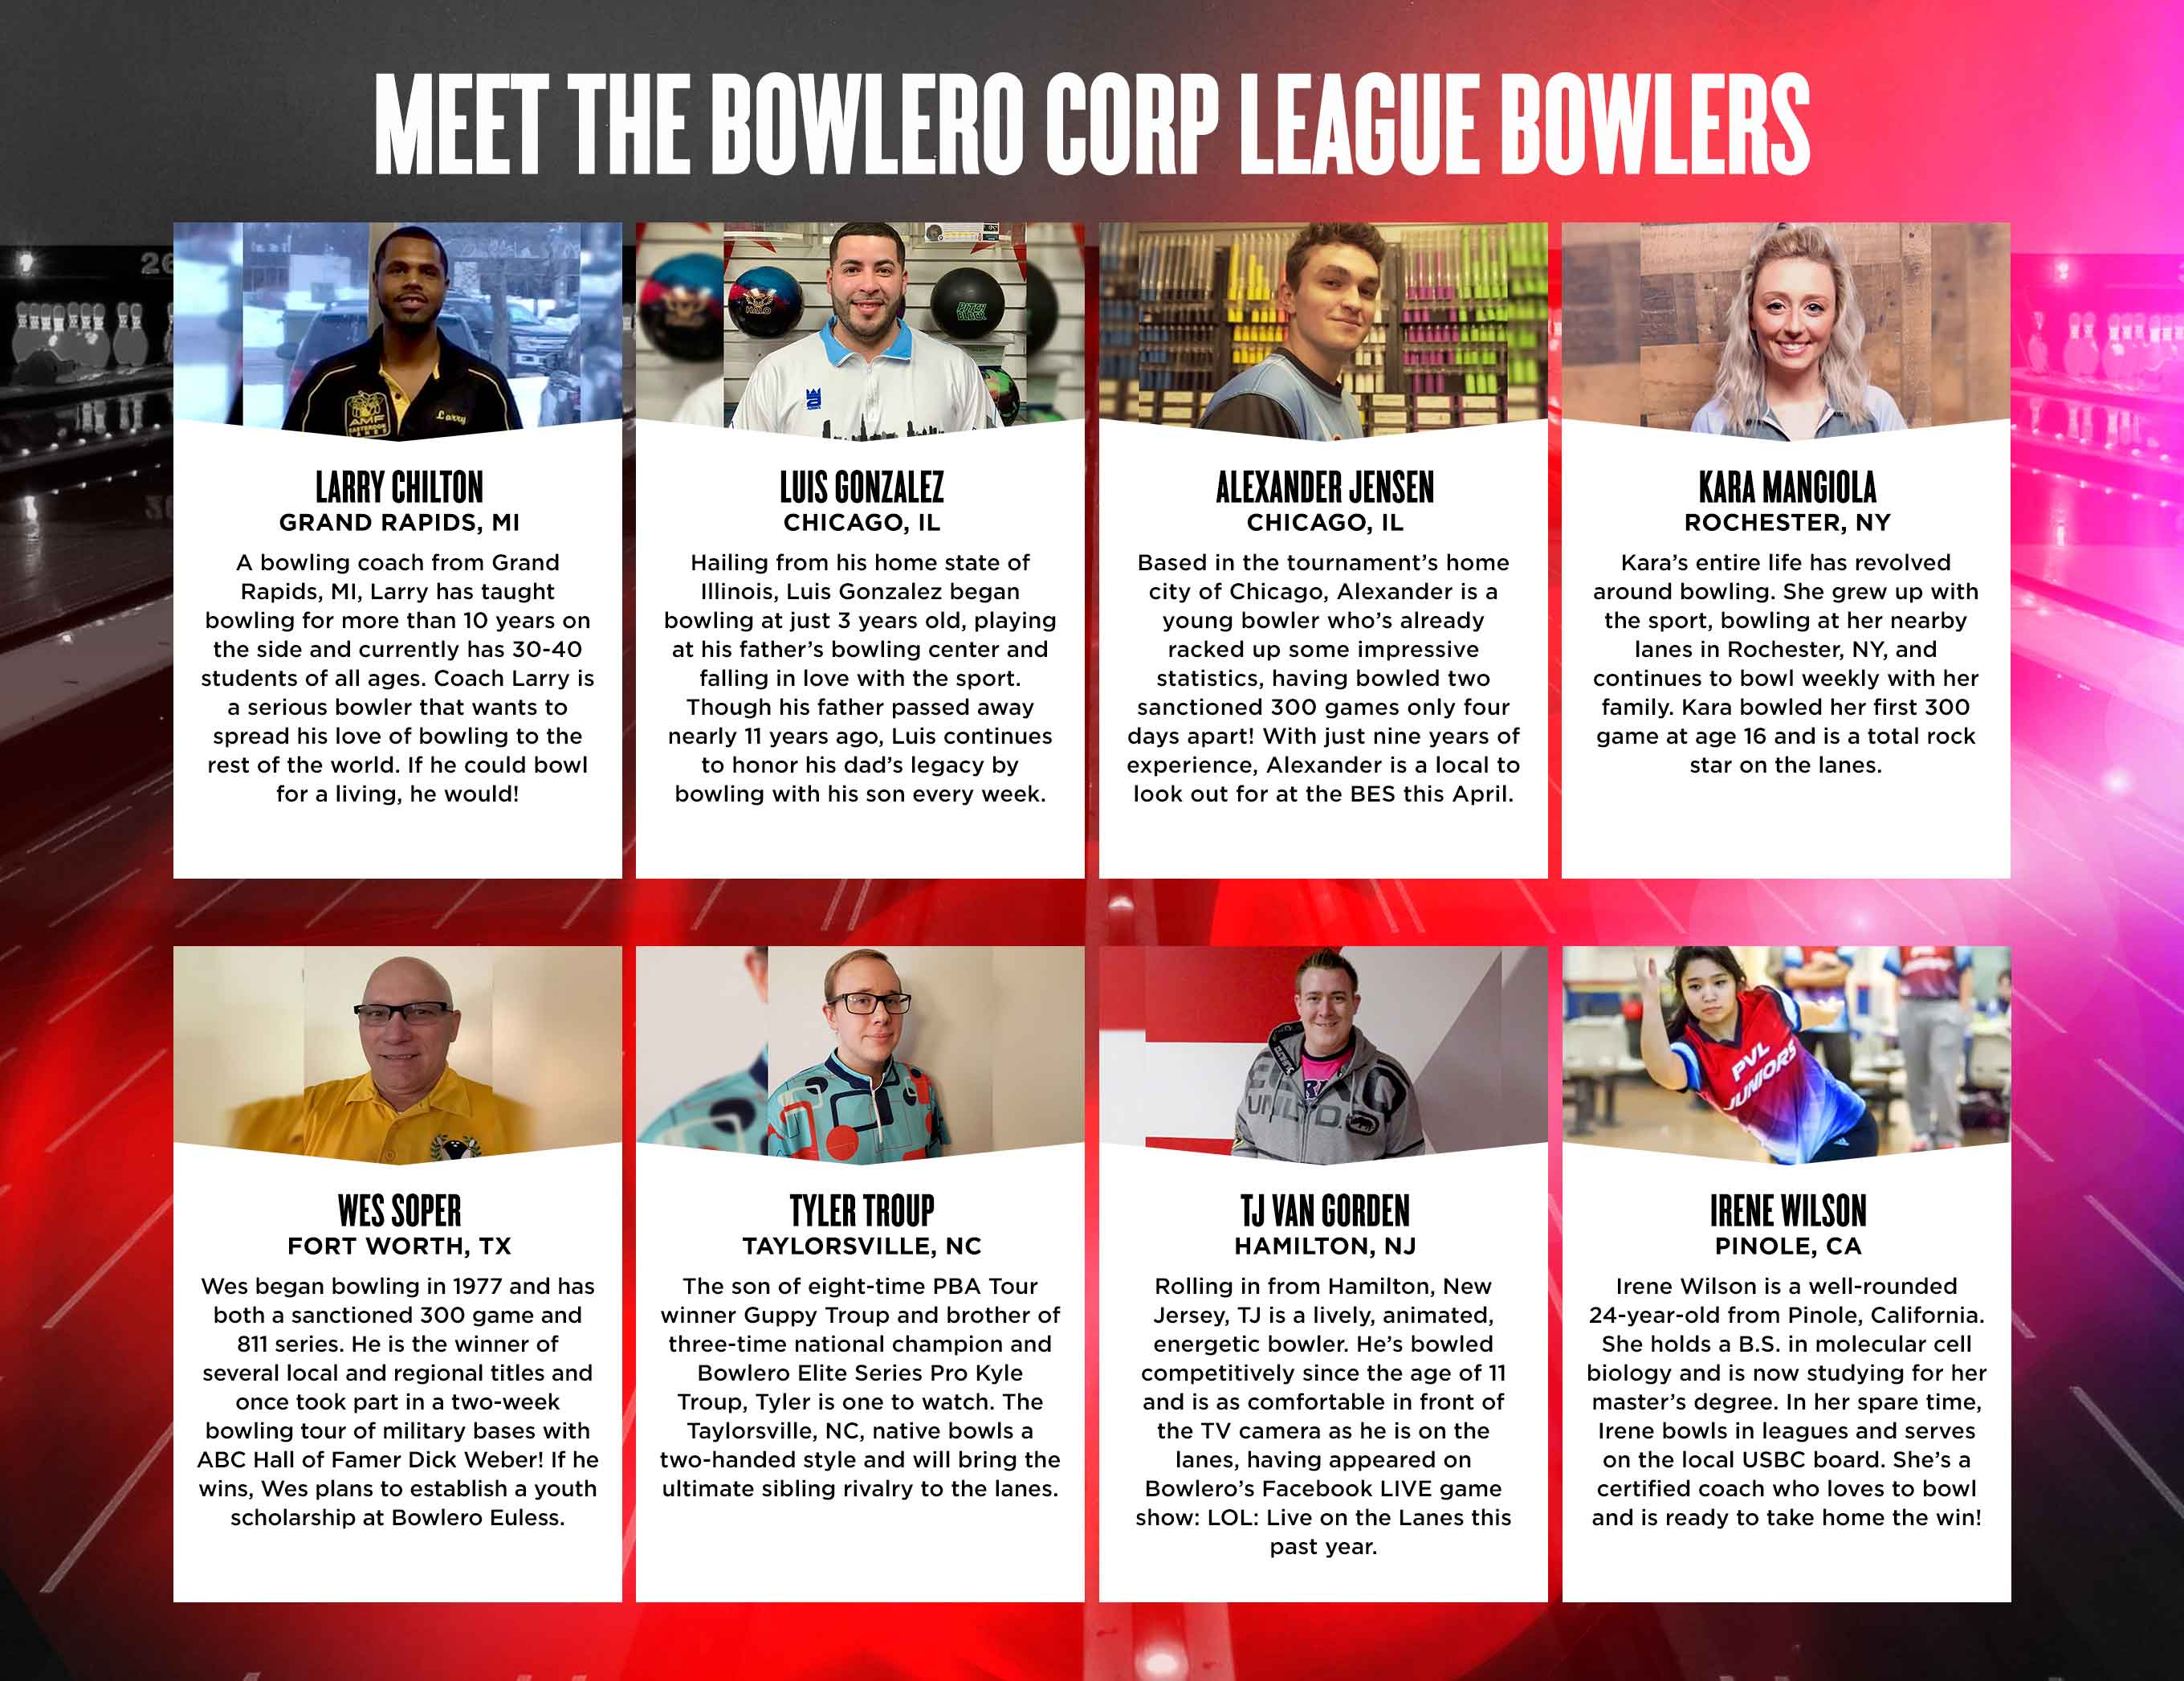 list of bowlero corp league bowlers participating in the bowlero elite series tournament